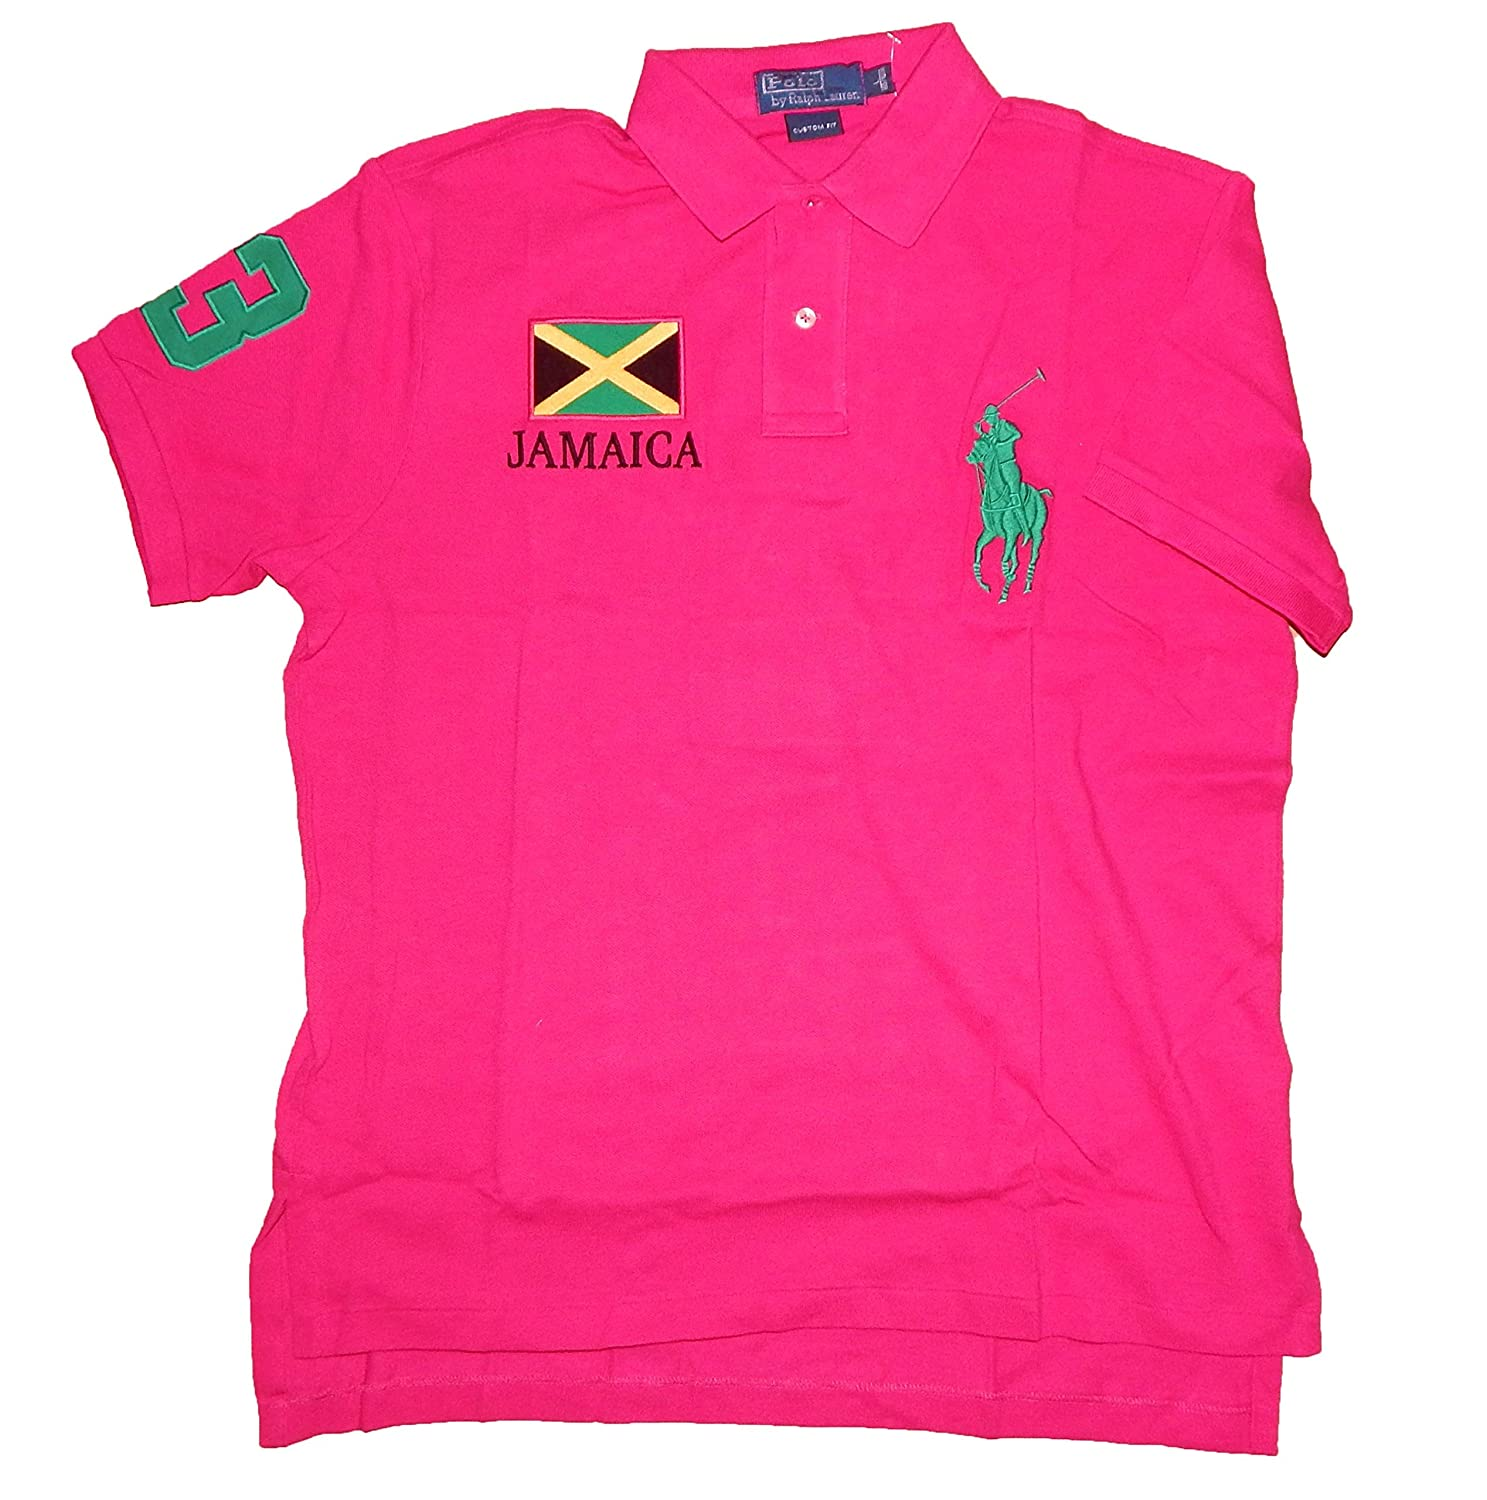 Polo Ralph Lauren - Polo para Hombre, Jamaica Team, Custom Fit ...